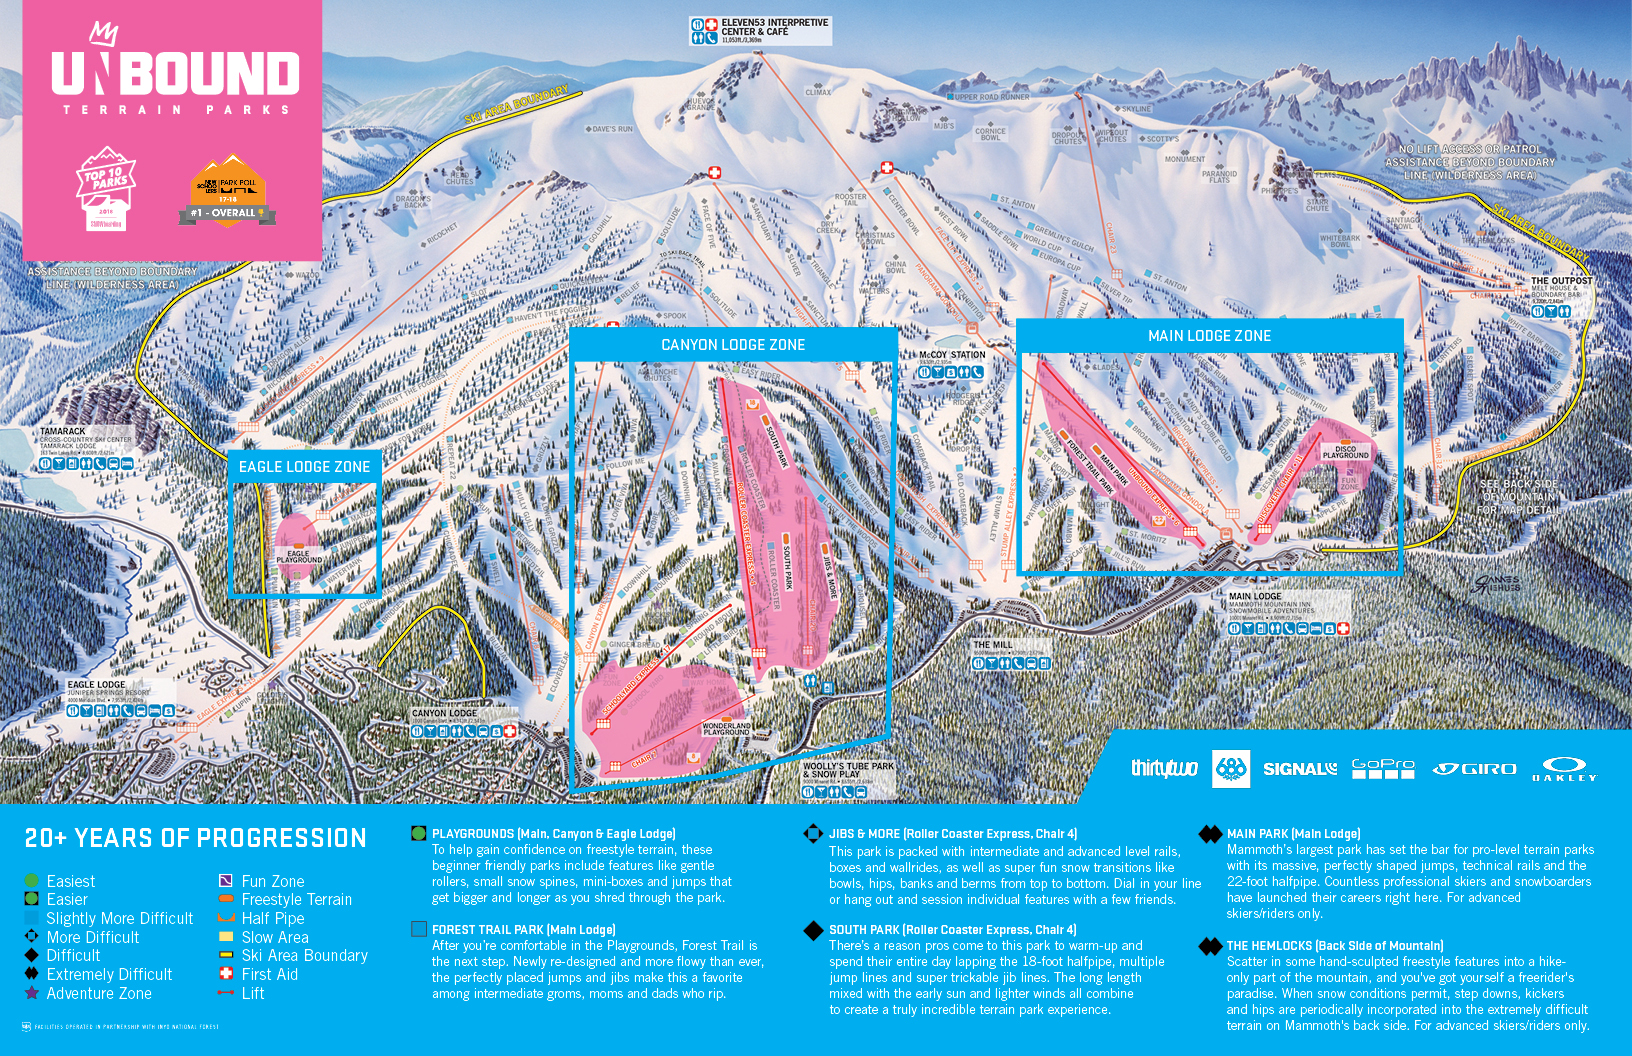 Unbound Terrain Park Map | Learn More | Mammoth Mountain on chief mountain trail map, bishop trail map, jericho mountain trail map, parker mountain trail map, map of vail mountain trail map, alpine meadows ski resort trail map, snowbasin mountain trail map, mammoth trail map pdf, salisbury ct trail map, catalina mountain trail map, attitash bear peak trail map, laurel mountain trail map, mendocino trail map, ski mountain map, mammoth mtn trail map, morgan creek trail map, powder mountain trail map, city park bike trails map, snowbird mountain trail map, big mountain trail map,